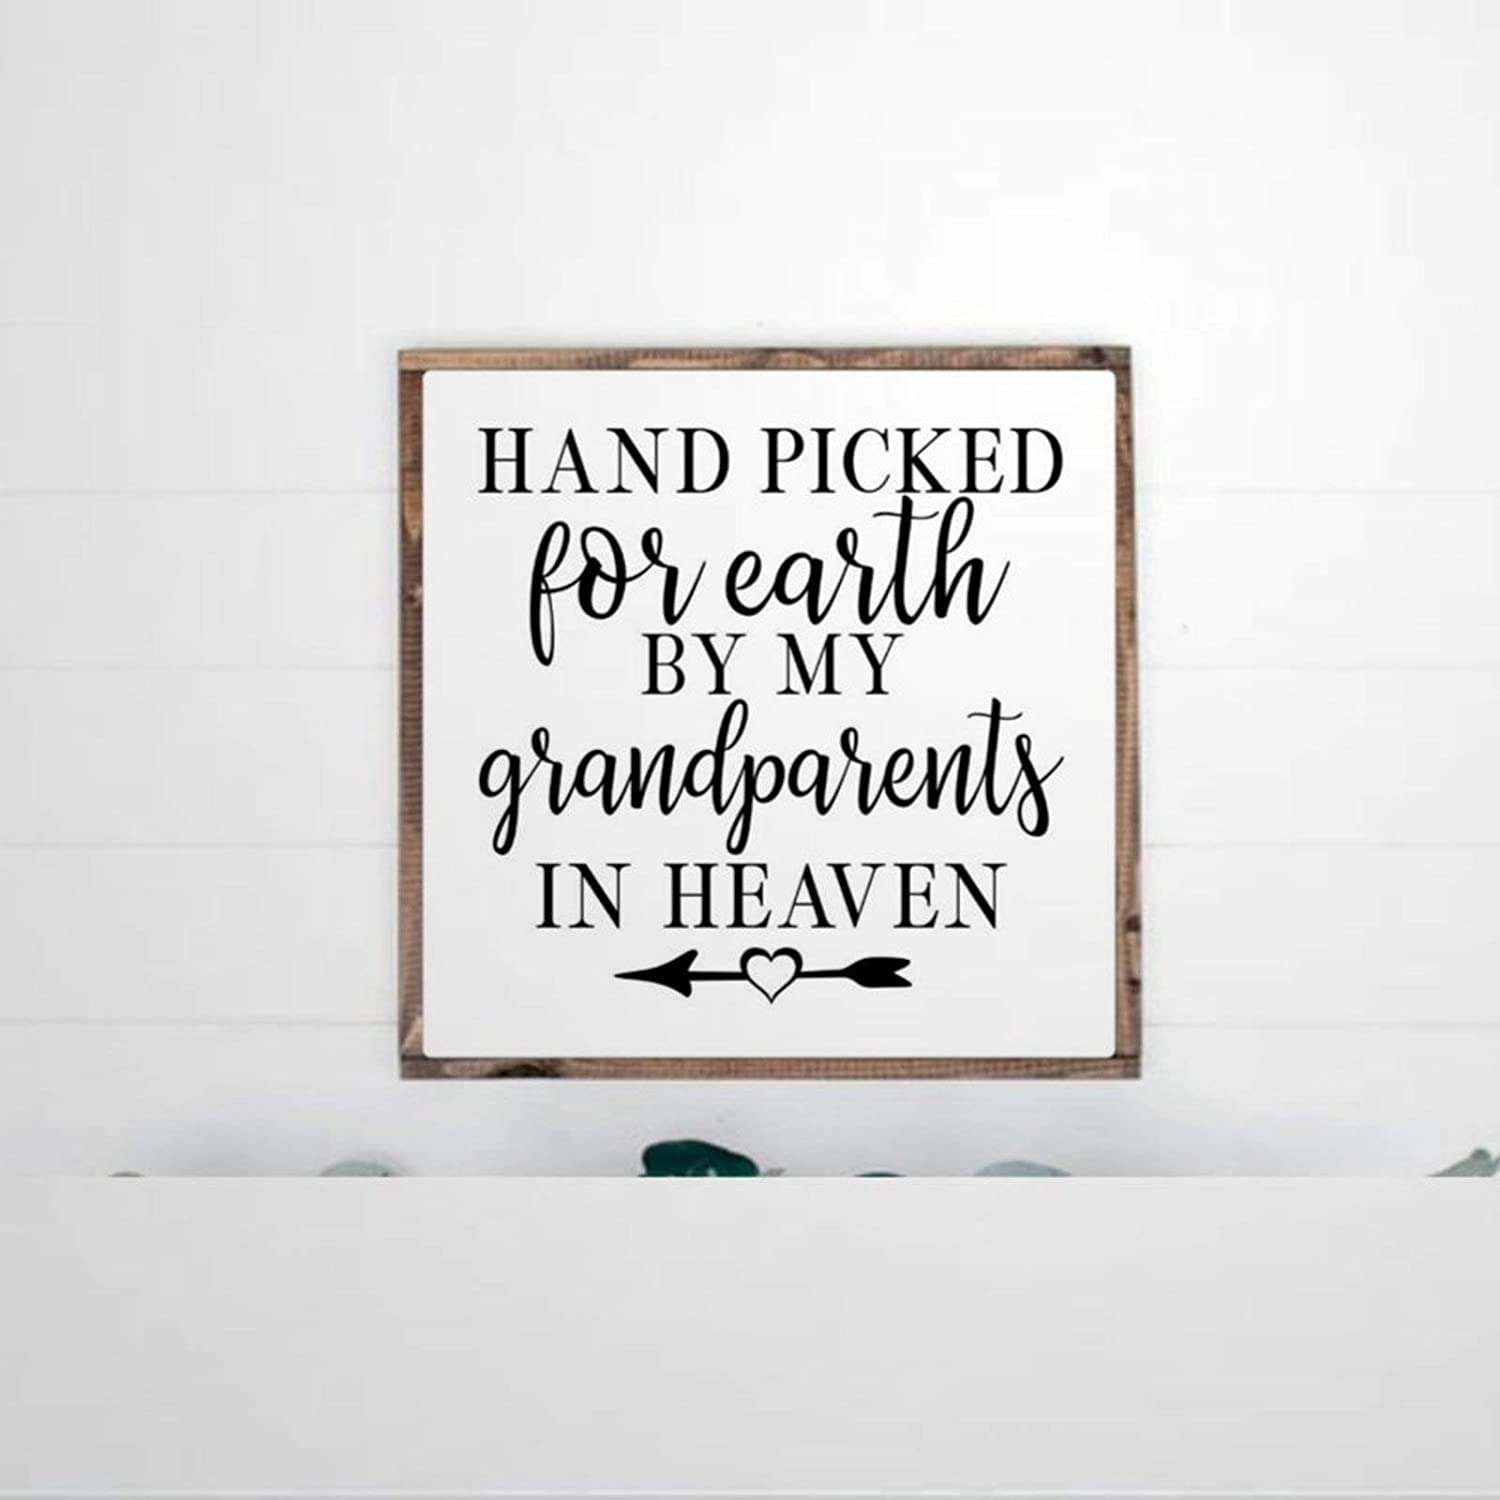 DONL9BAUER Hand Picked for Earth by My Grandparents in Heaven Framed Wooden Sign Baby Memorial Wall Hanging Farmhouse Home Decor Wall Art for Living Room